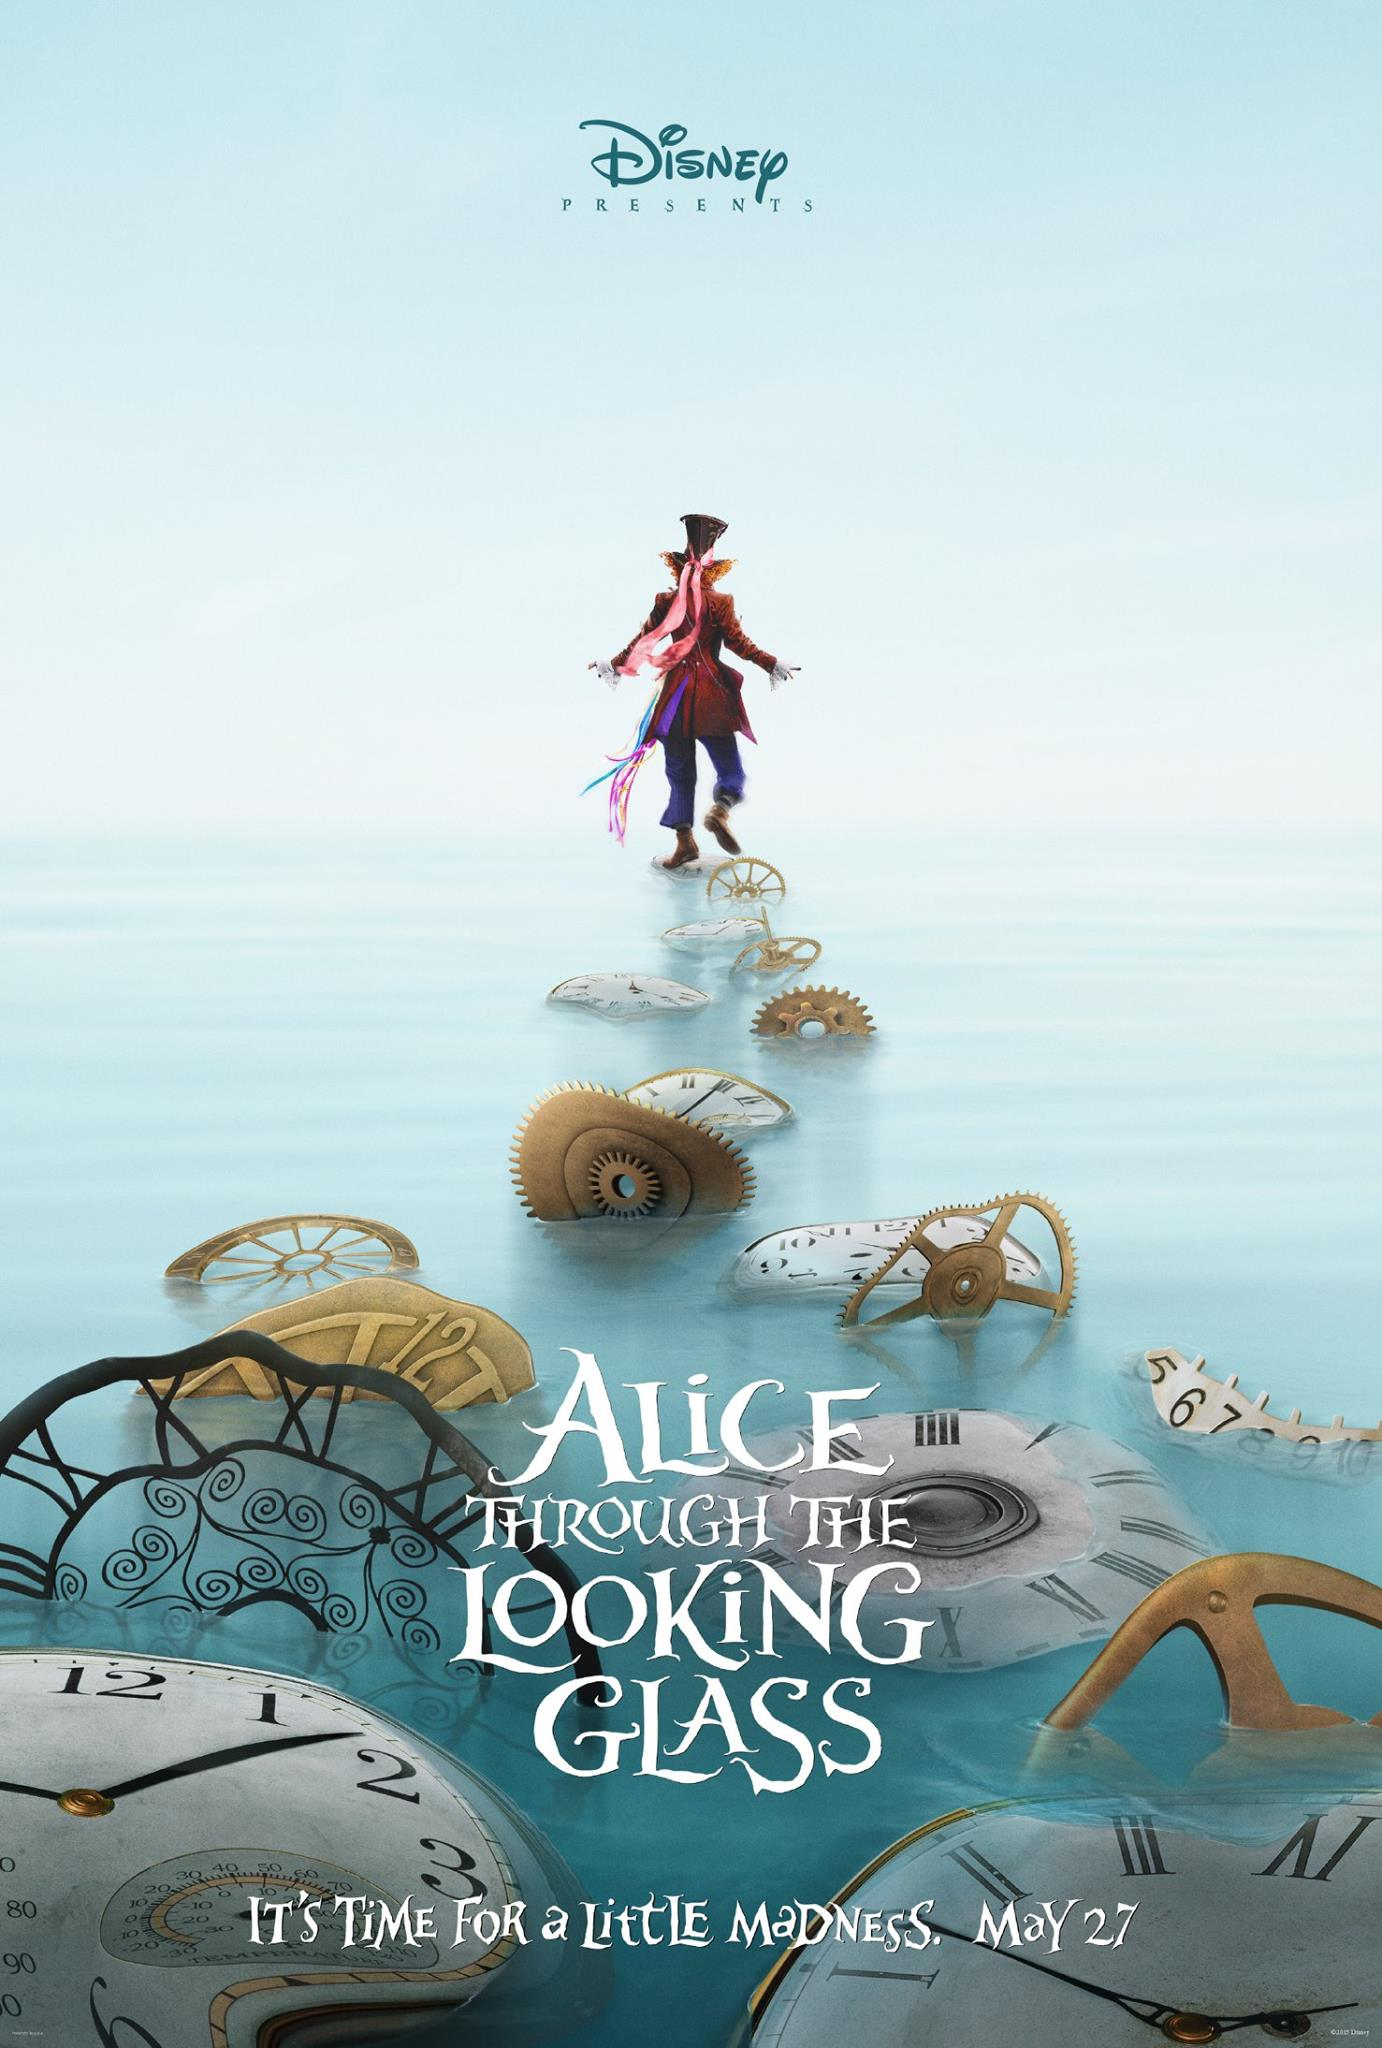 alice-looking-poster-depp.jpg